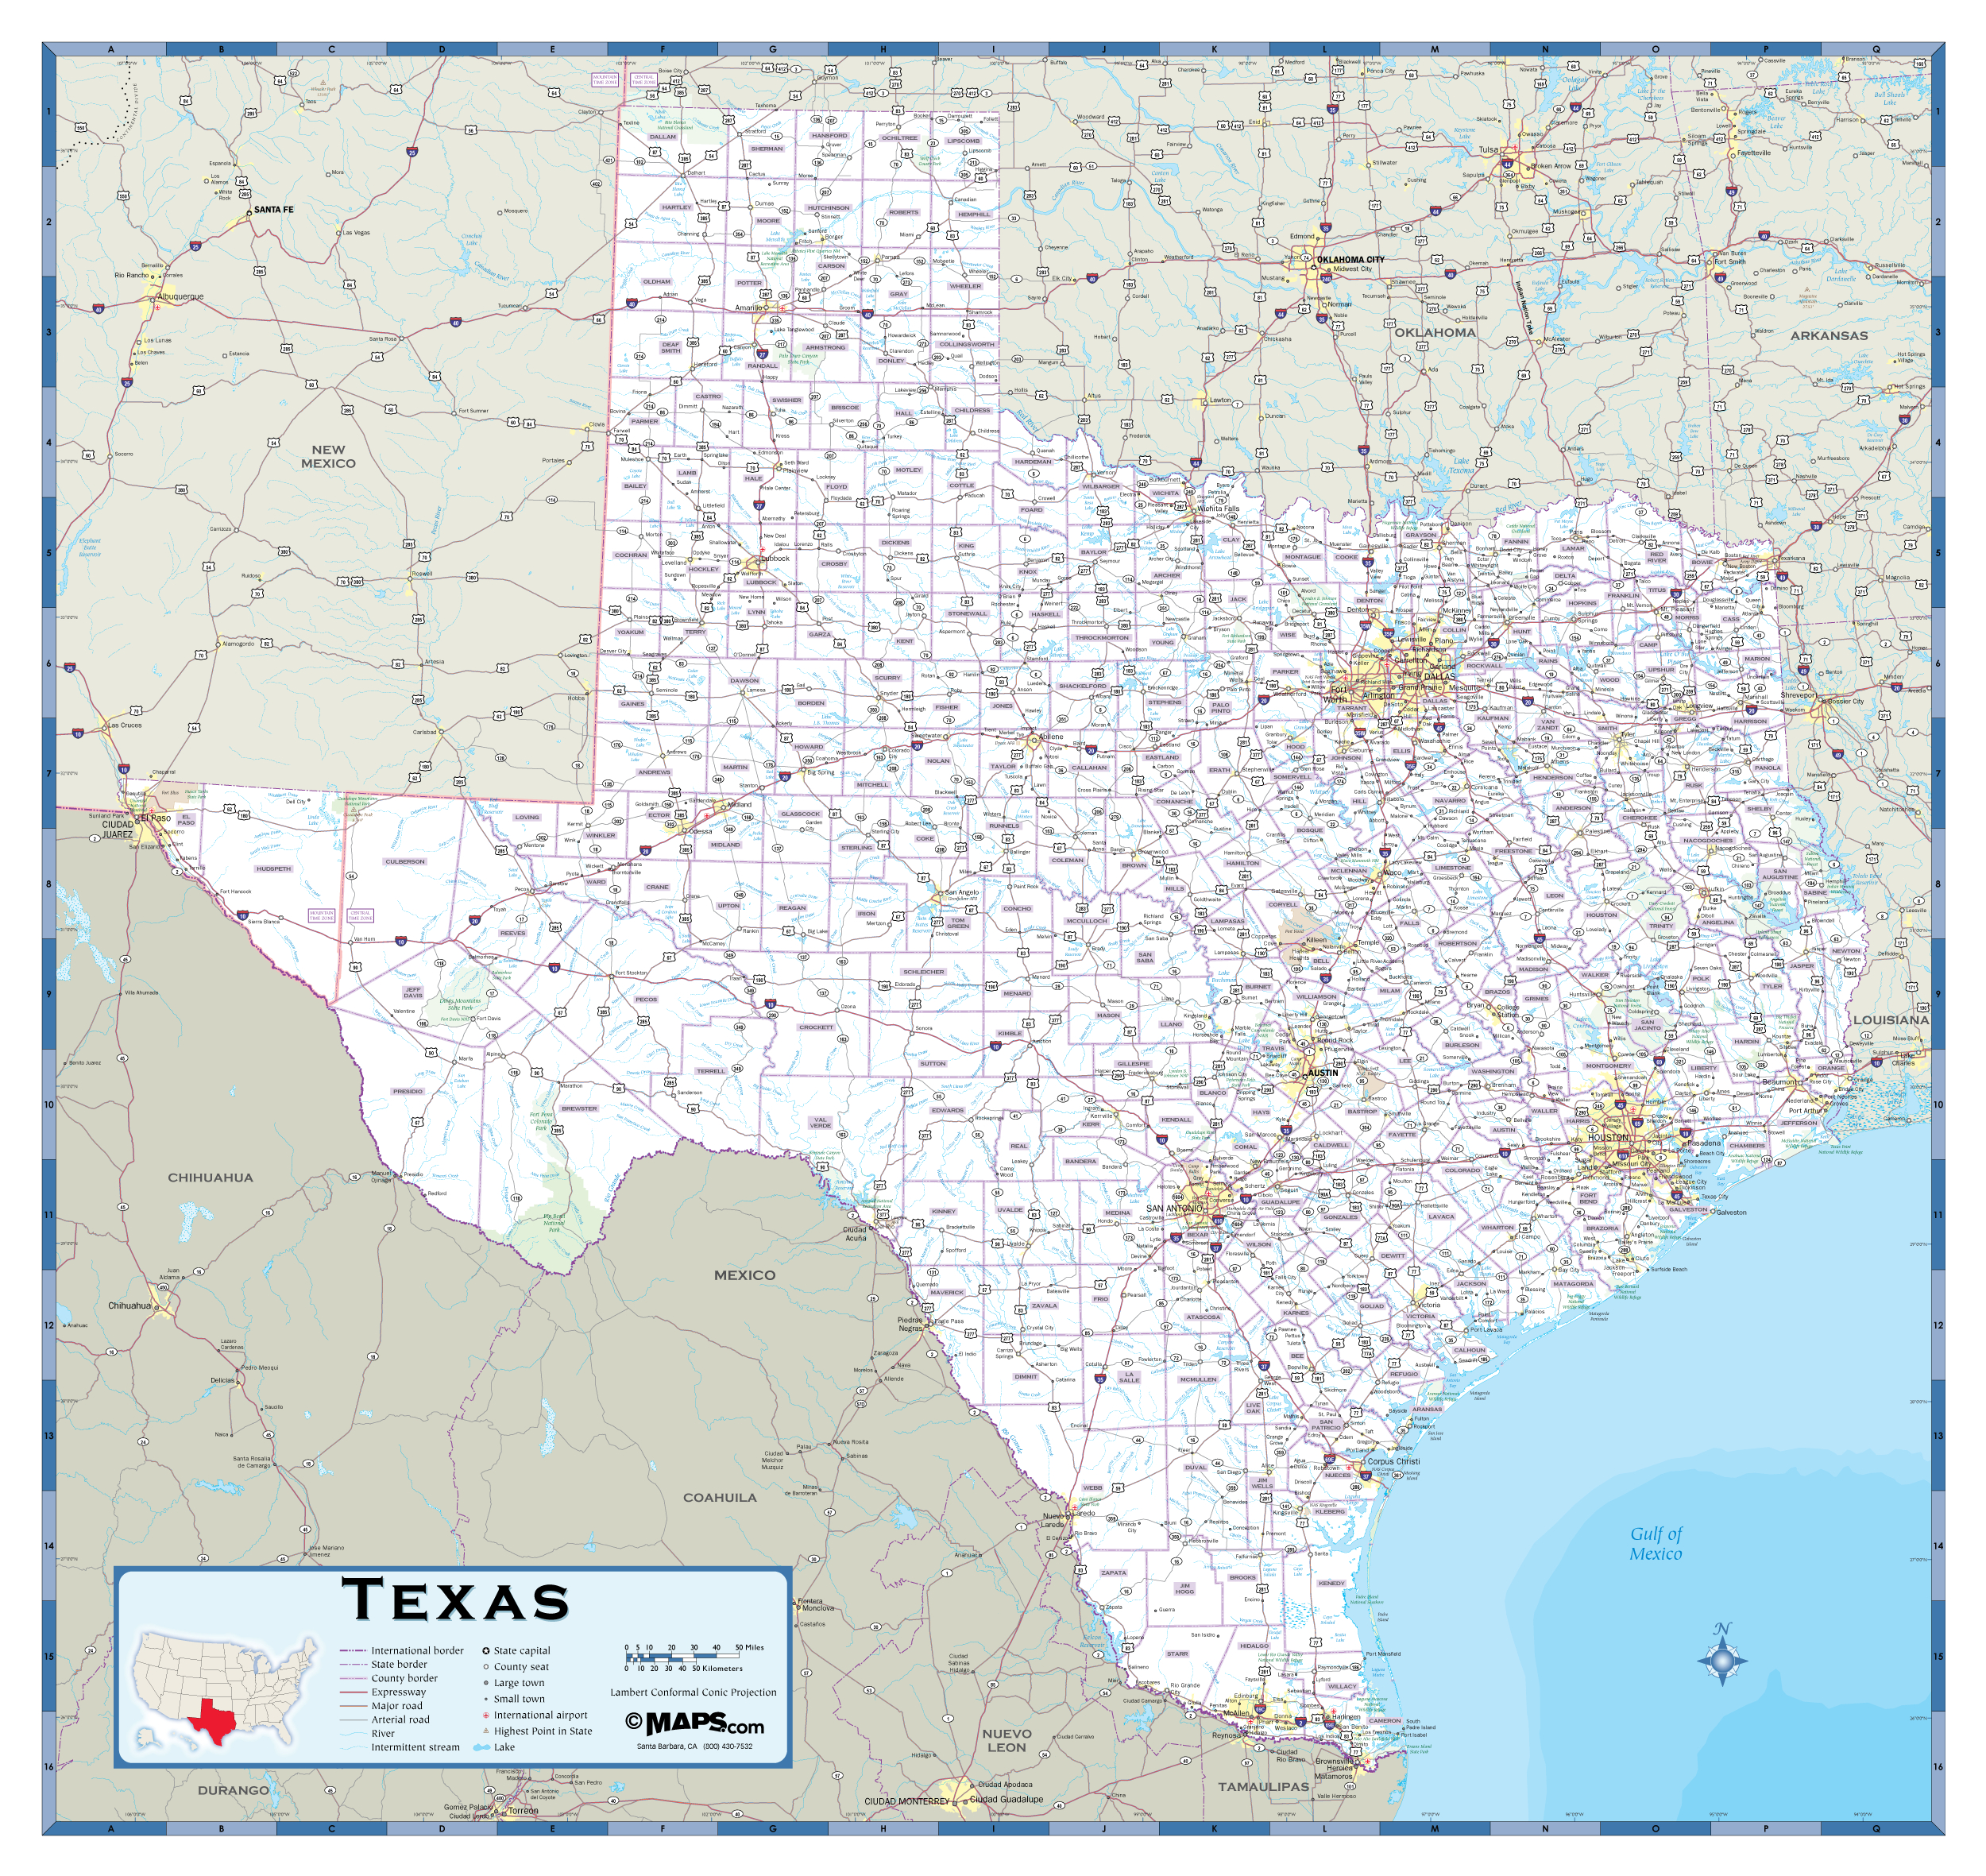 Texas Highway Wall Map - Maps - Texas Wma Map